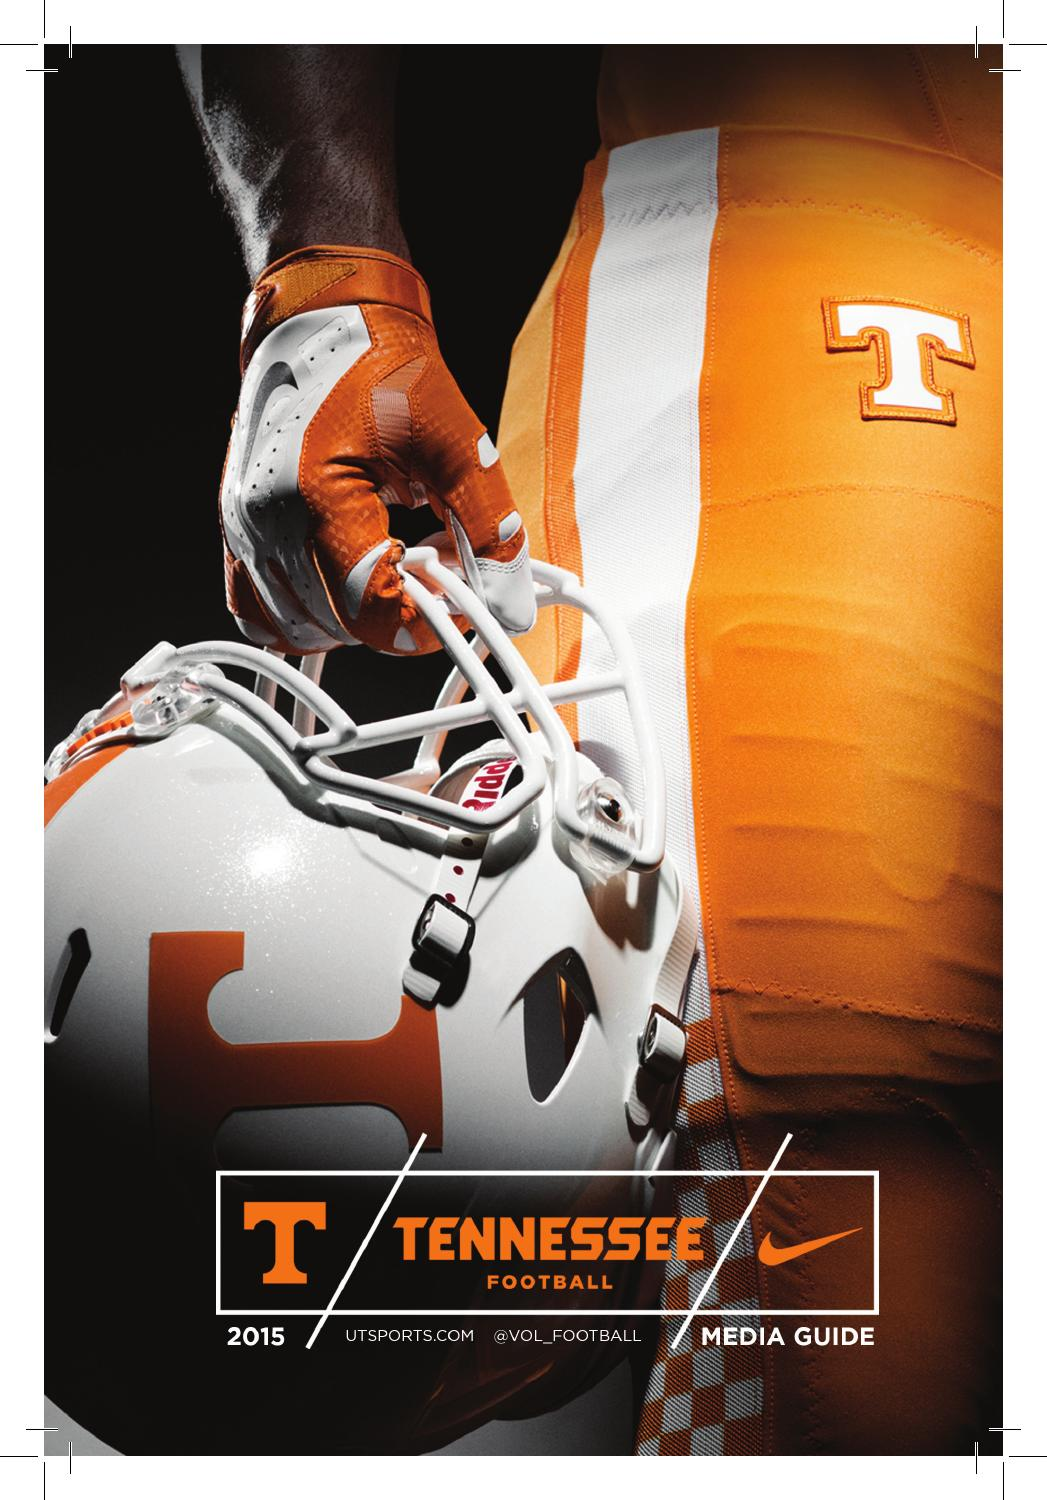 a594196ca1f 2015 Tennessee Football Media Guide by The University of Tennessee  Athletics Department - issuu